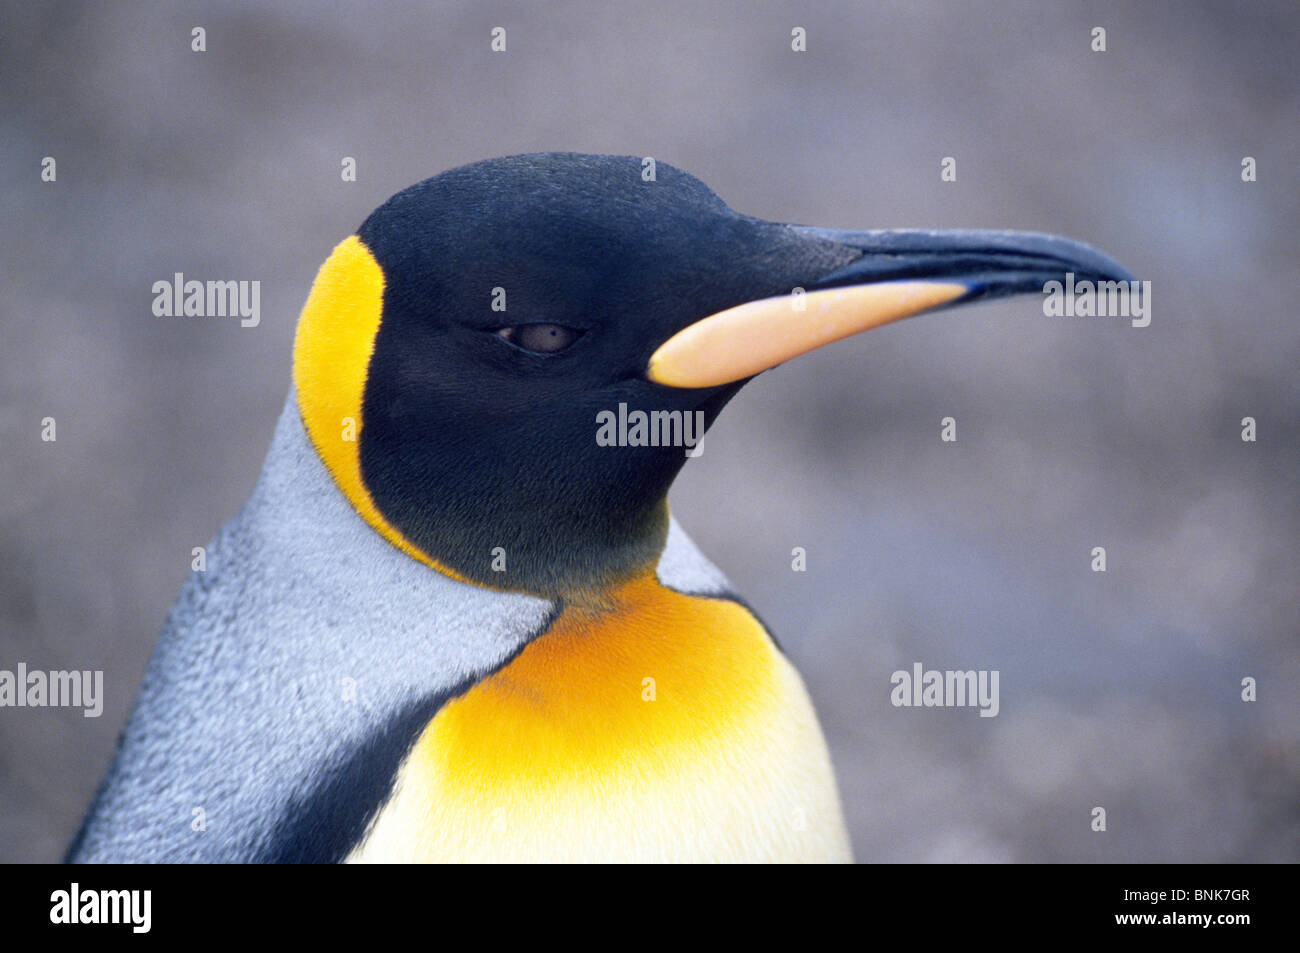 Orange plumage on the head and upper chest identify King Penguins, like this one on South Georgia Island in the - Stock Image